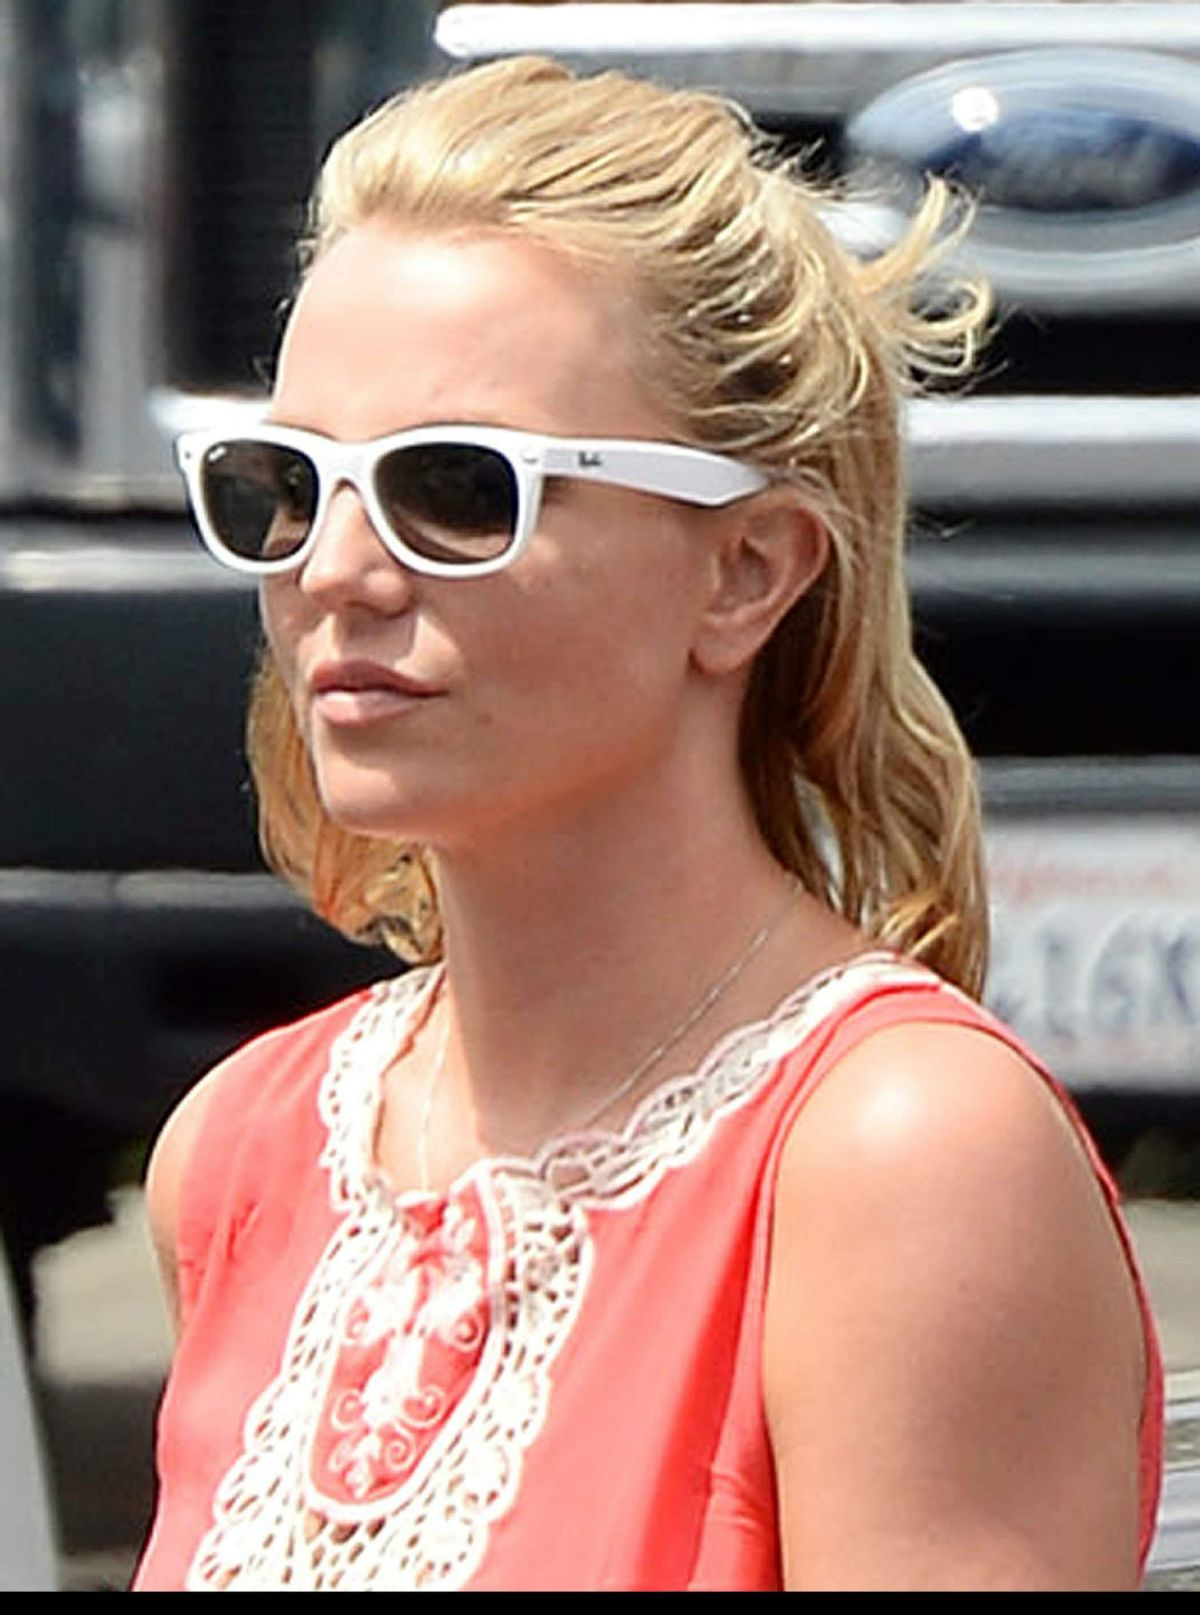 Britney Spears Lunch At Pedalers Fork Restaurant In Calabasas